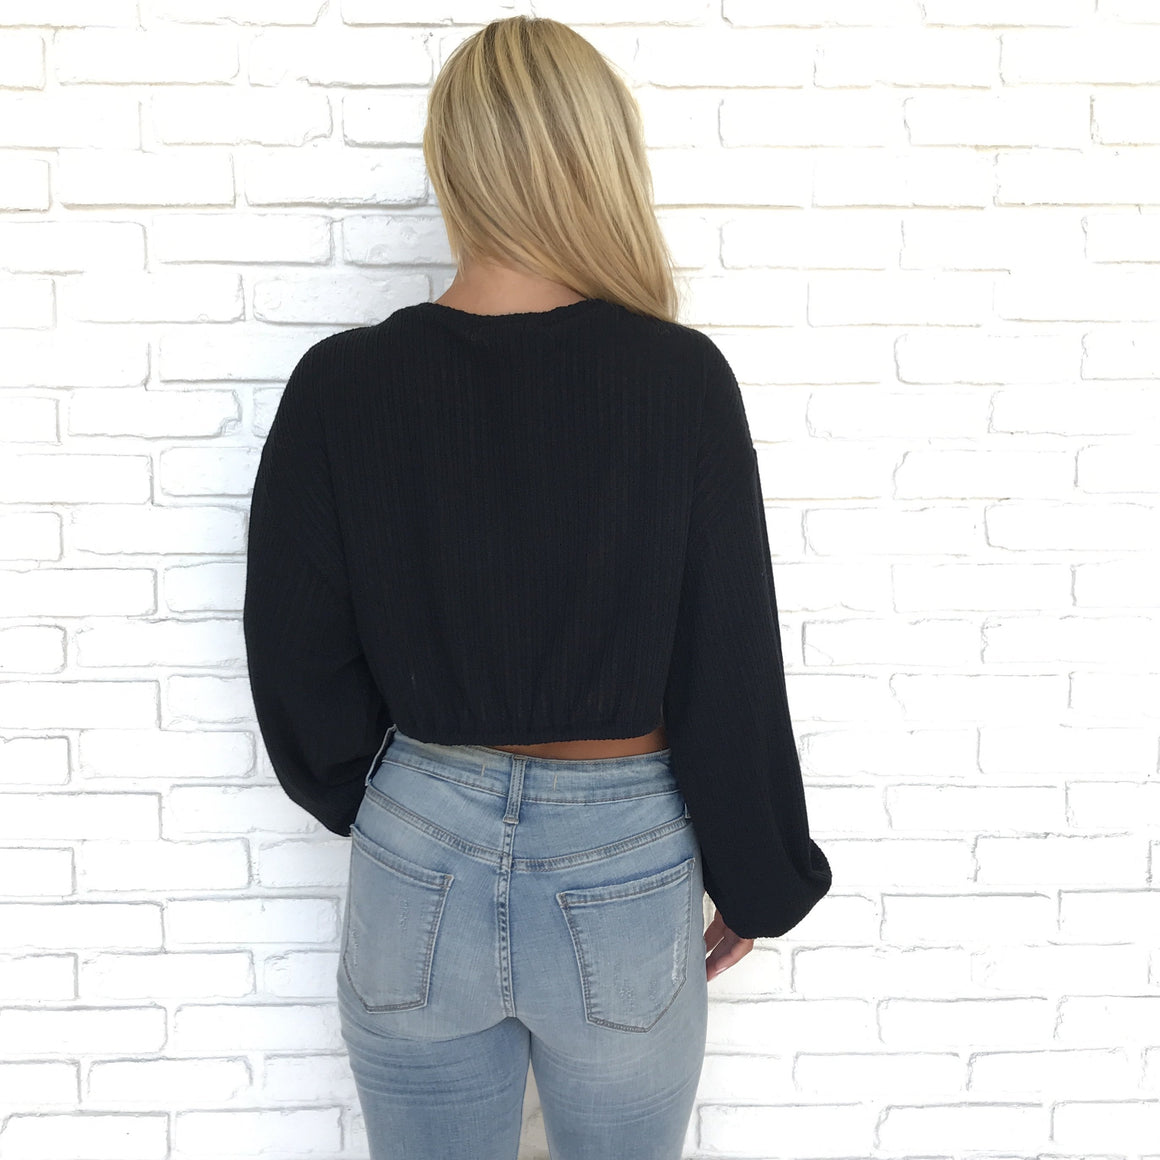 Late Night Out Black Sweater Top